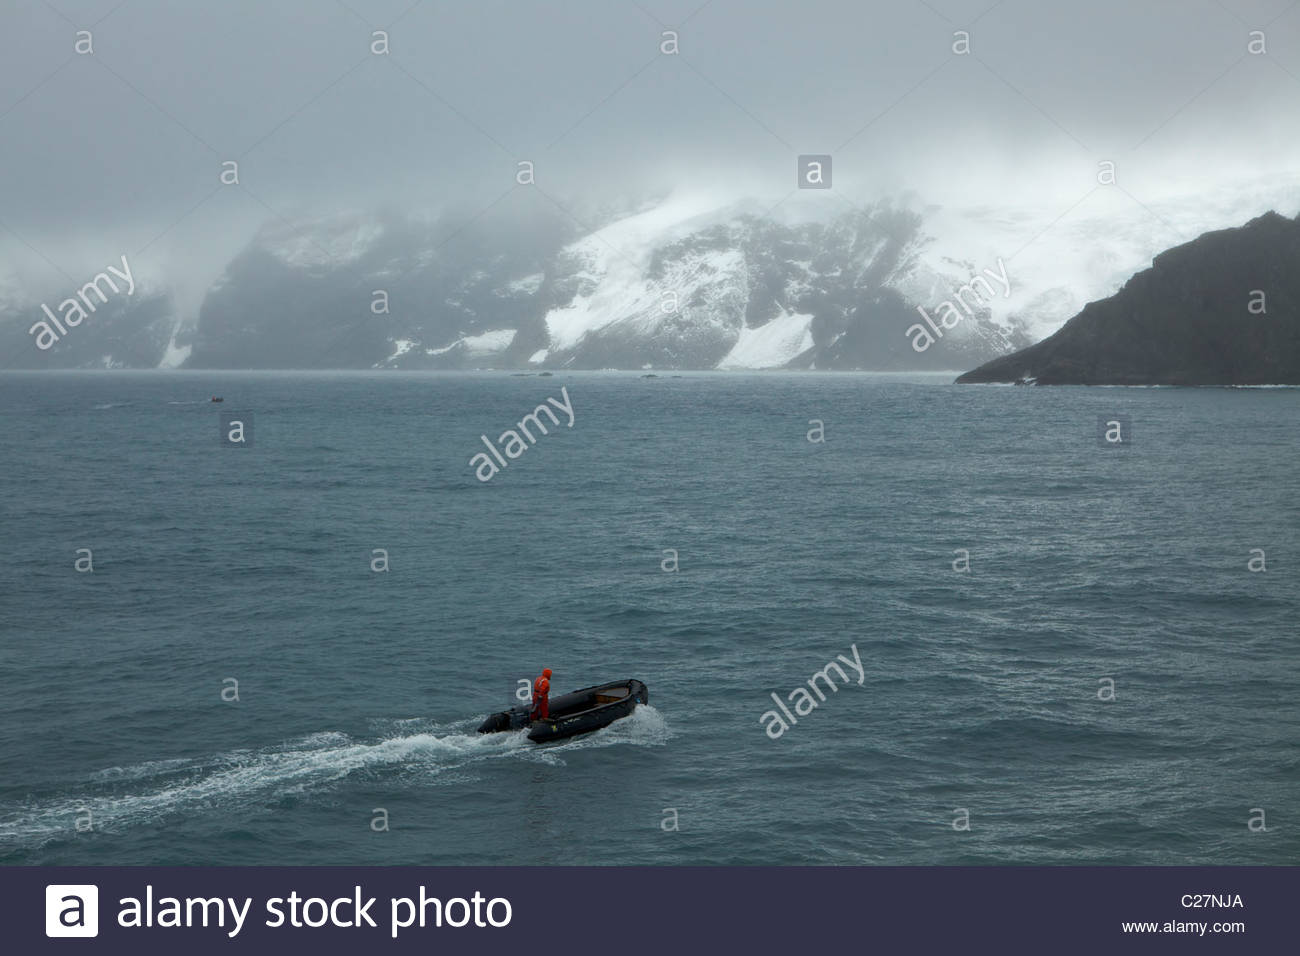 A man in an inflatable boat off of the coast of Elephant Island. - Stock Image